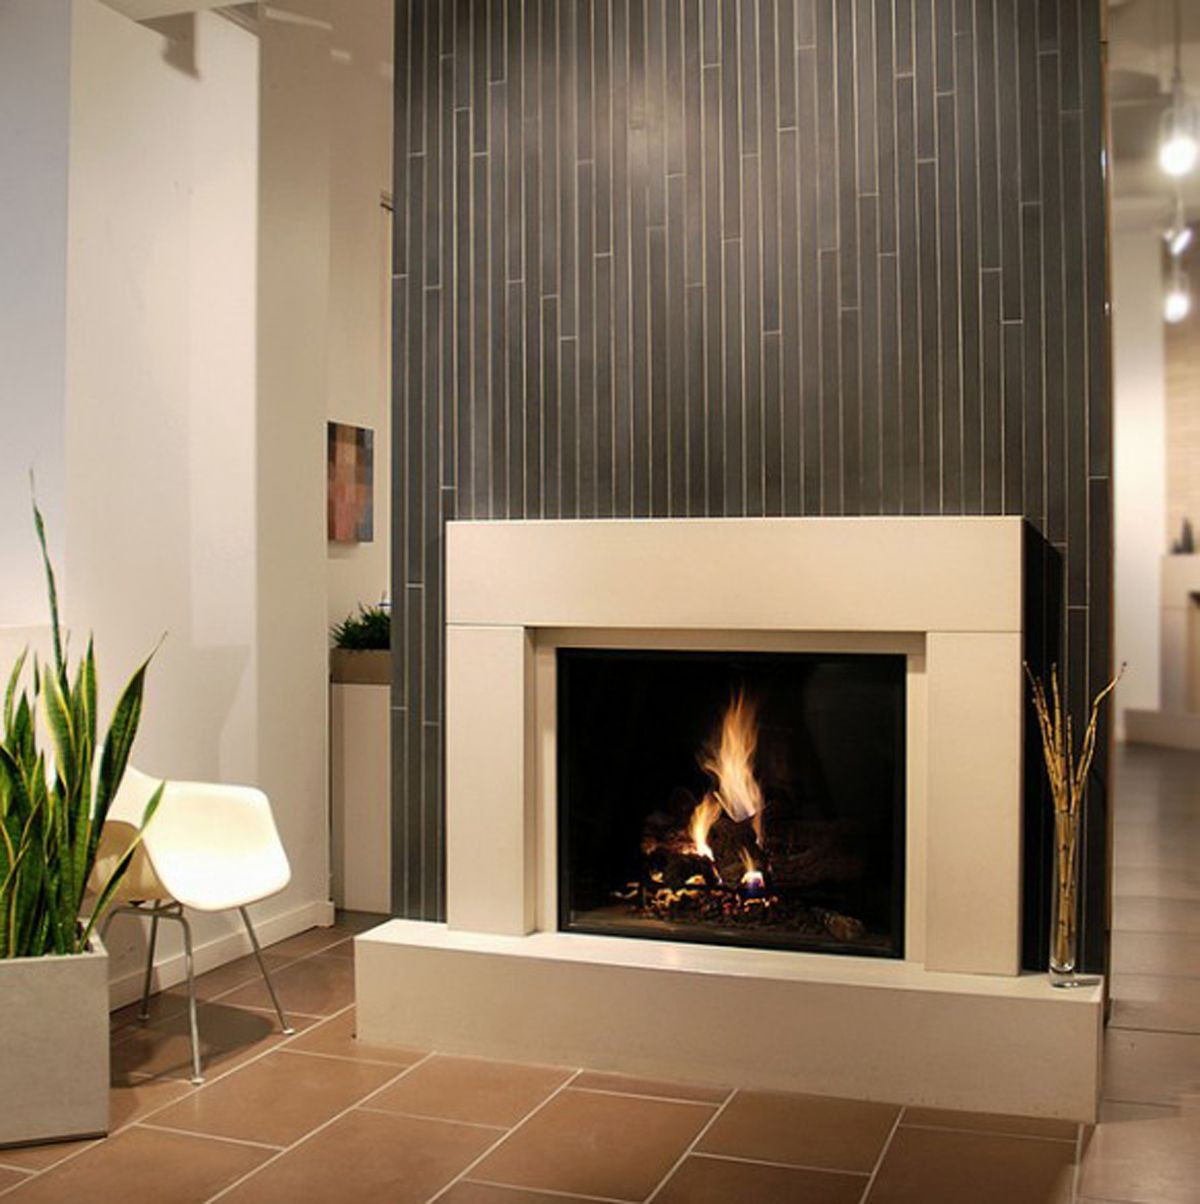 Best ideas about Tile For Fireplace . Save or Pin 25 Stunning Fireplace Ideas to Steal Now.